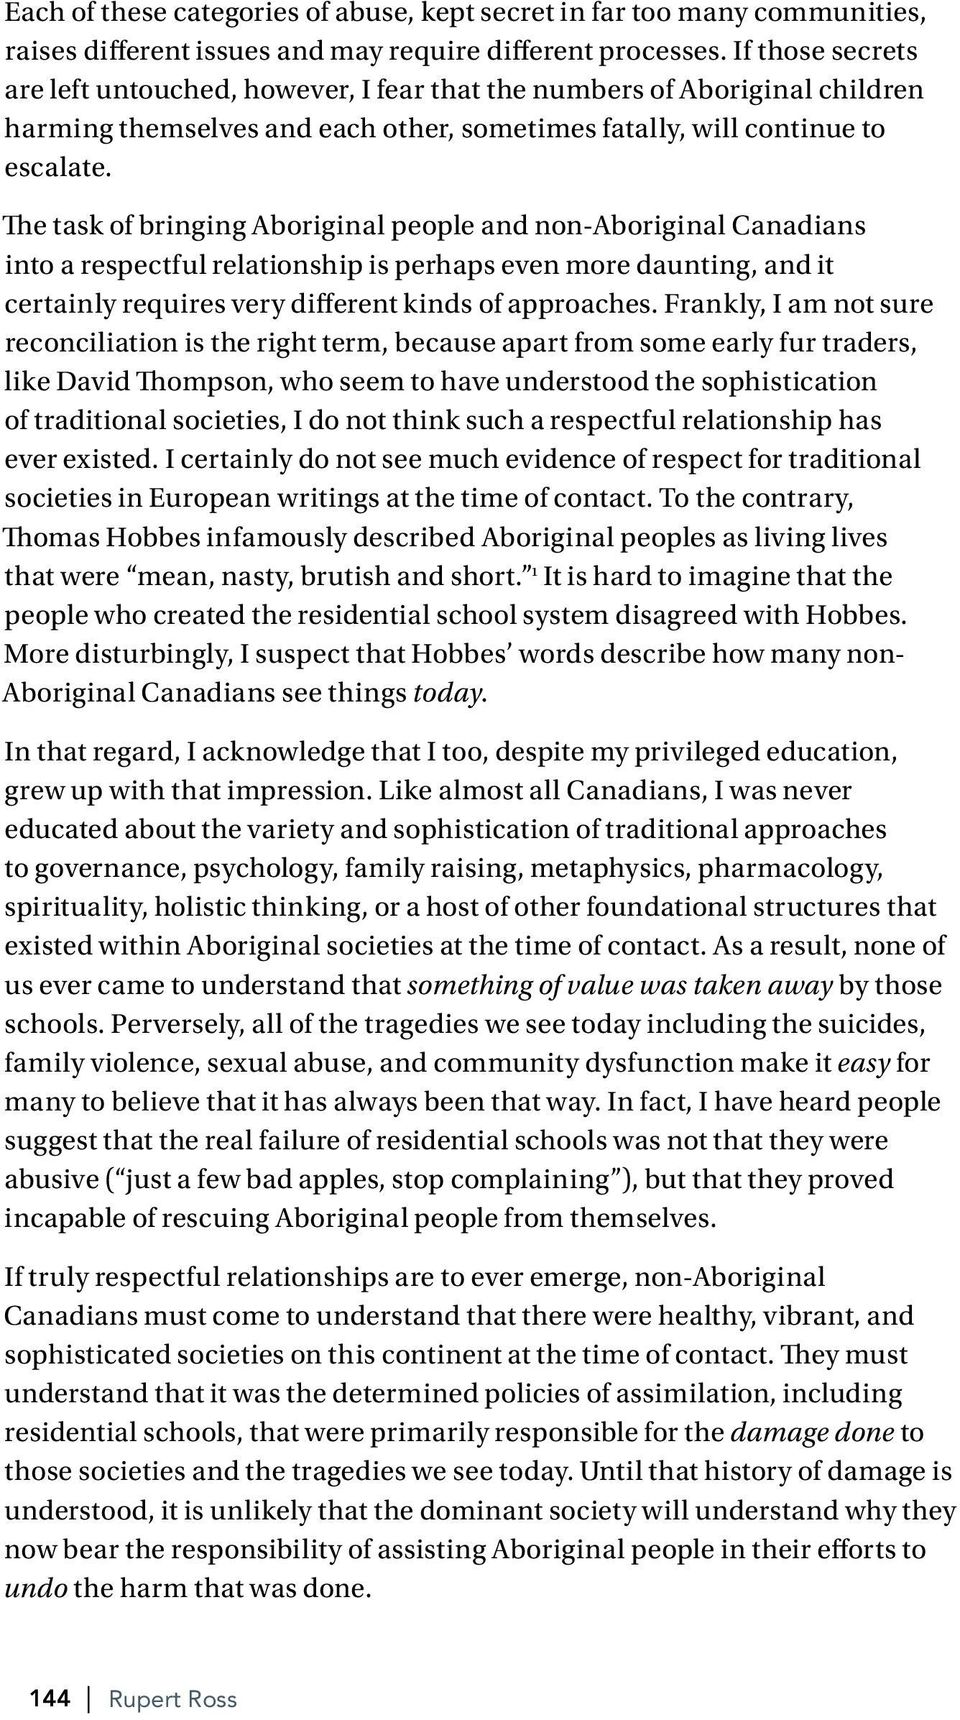 The task of bringing Aboriginal people and non-aboriginal Canadians into a respectful relationship is perhaps even more daunting, and it certainly requires very different kinds of approaches.